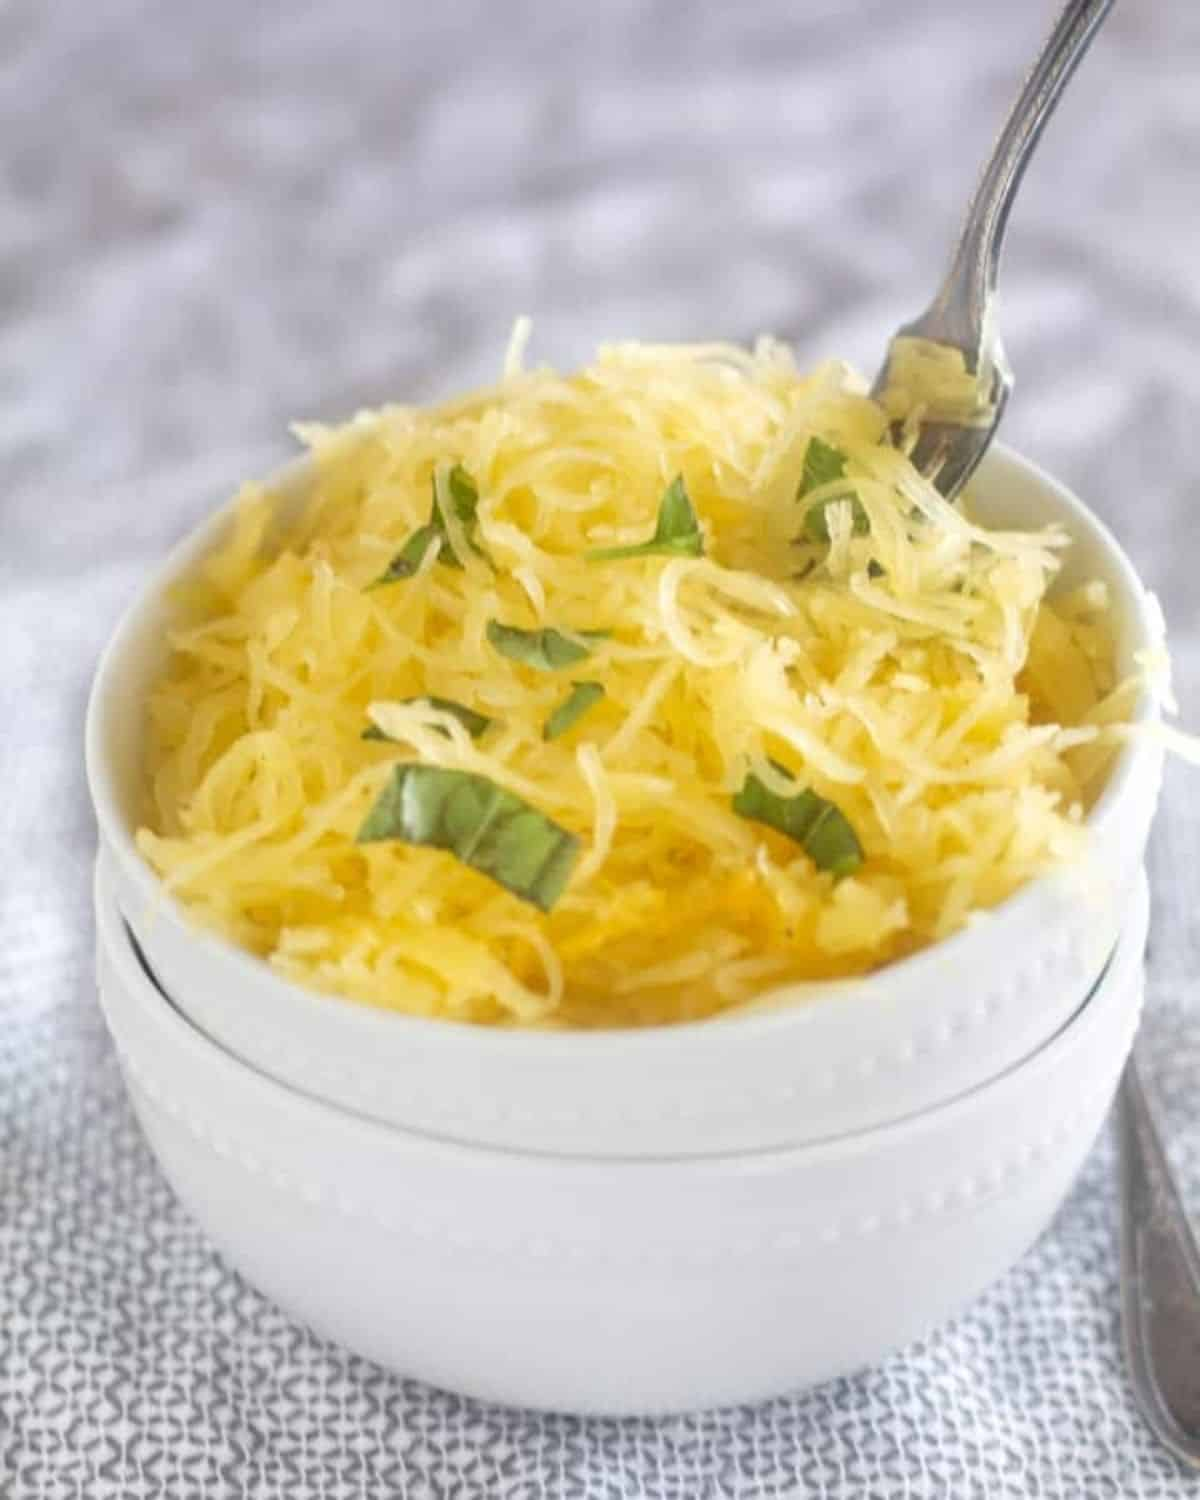 spaghetti squash in bowl with fork